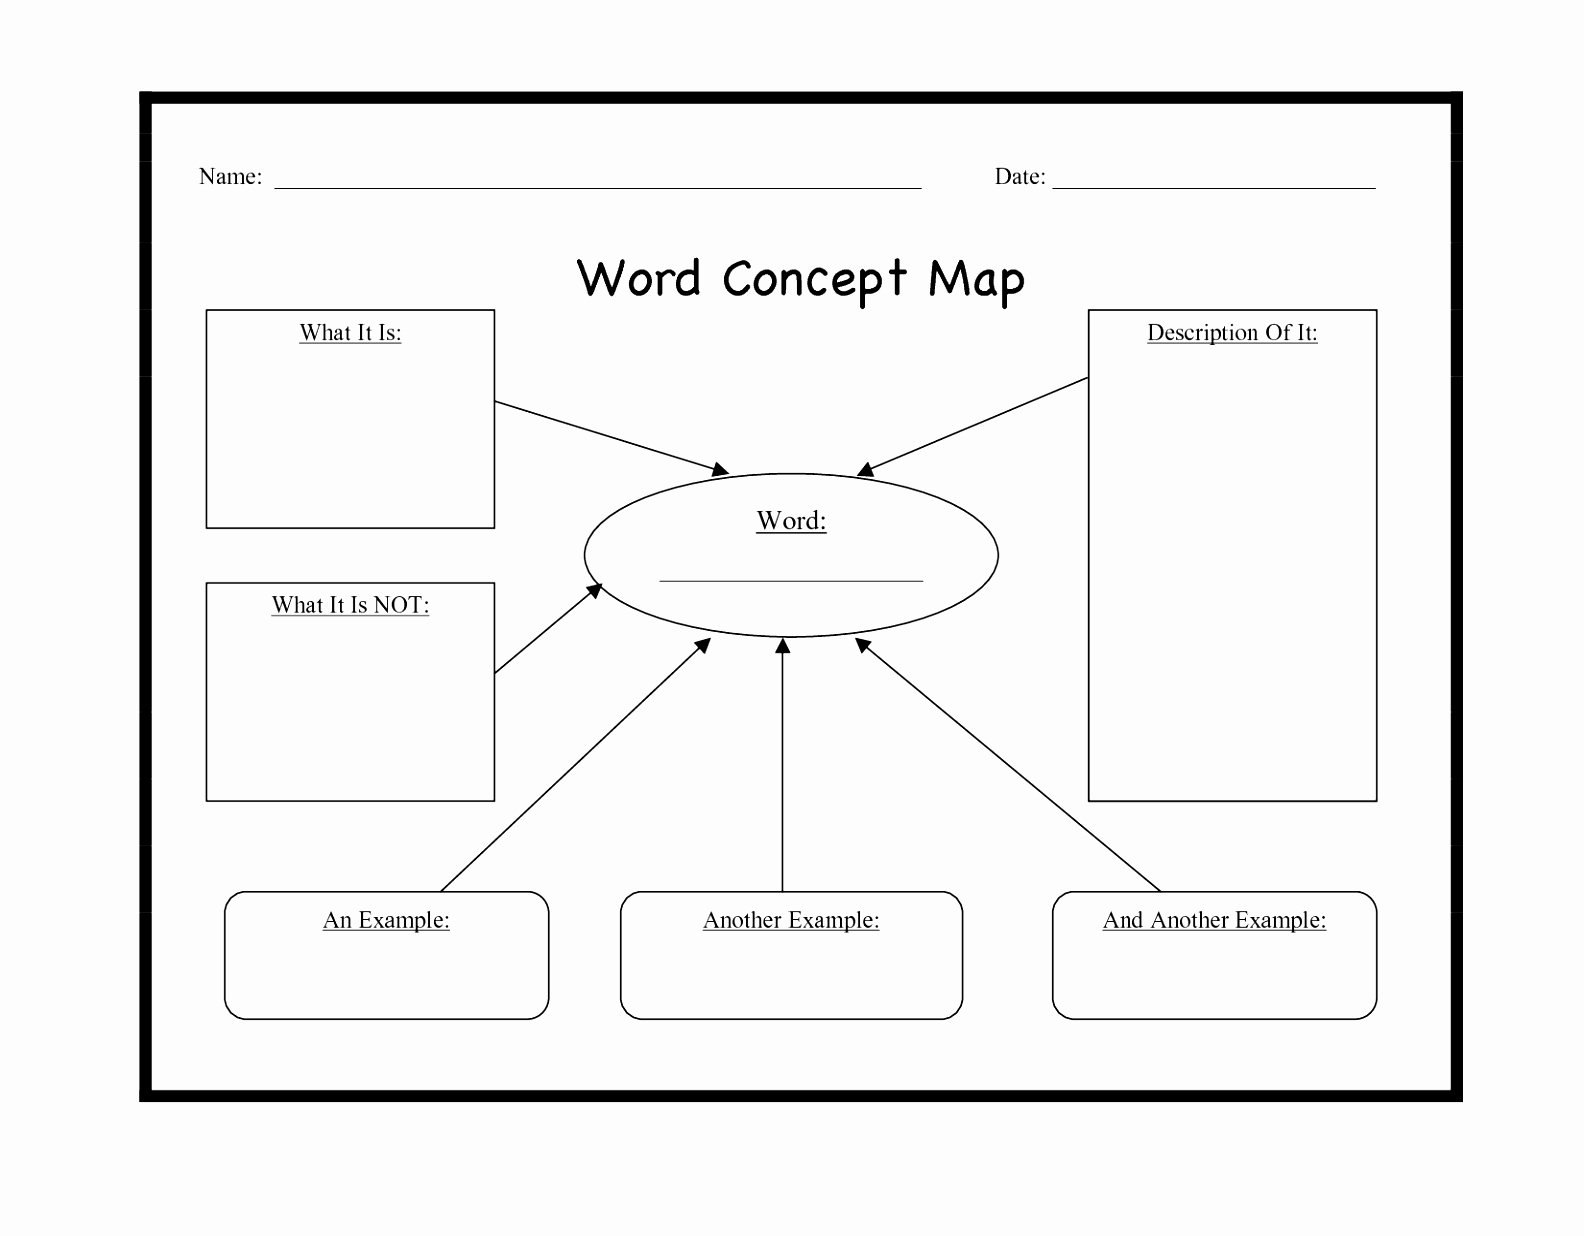 Free Blank Mind Map Template Best Of 9 Free Mind Map Template Word Ayiti